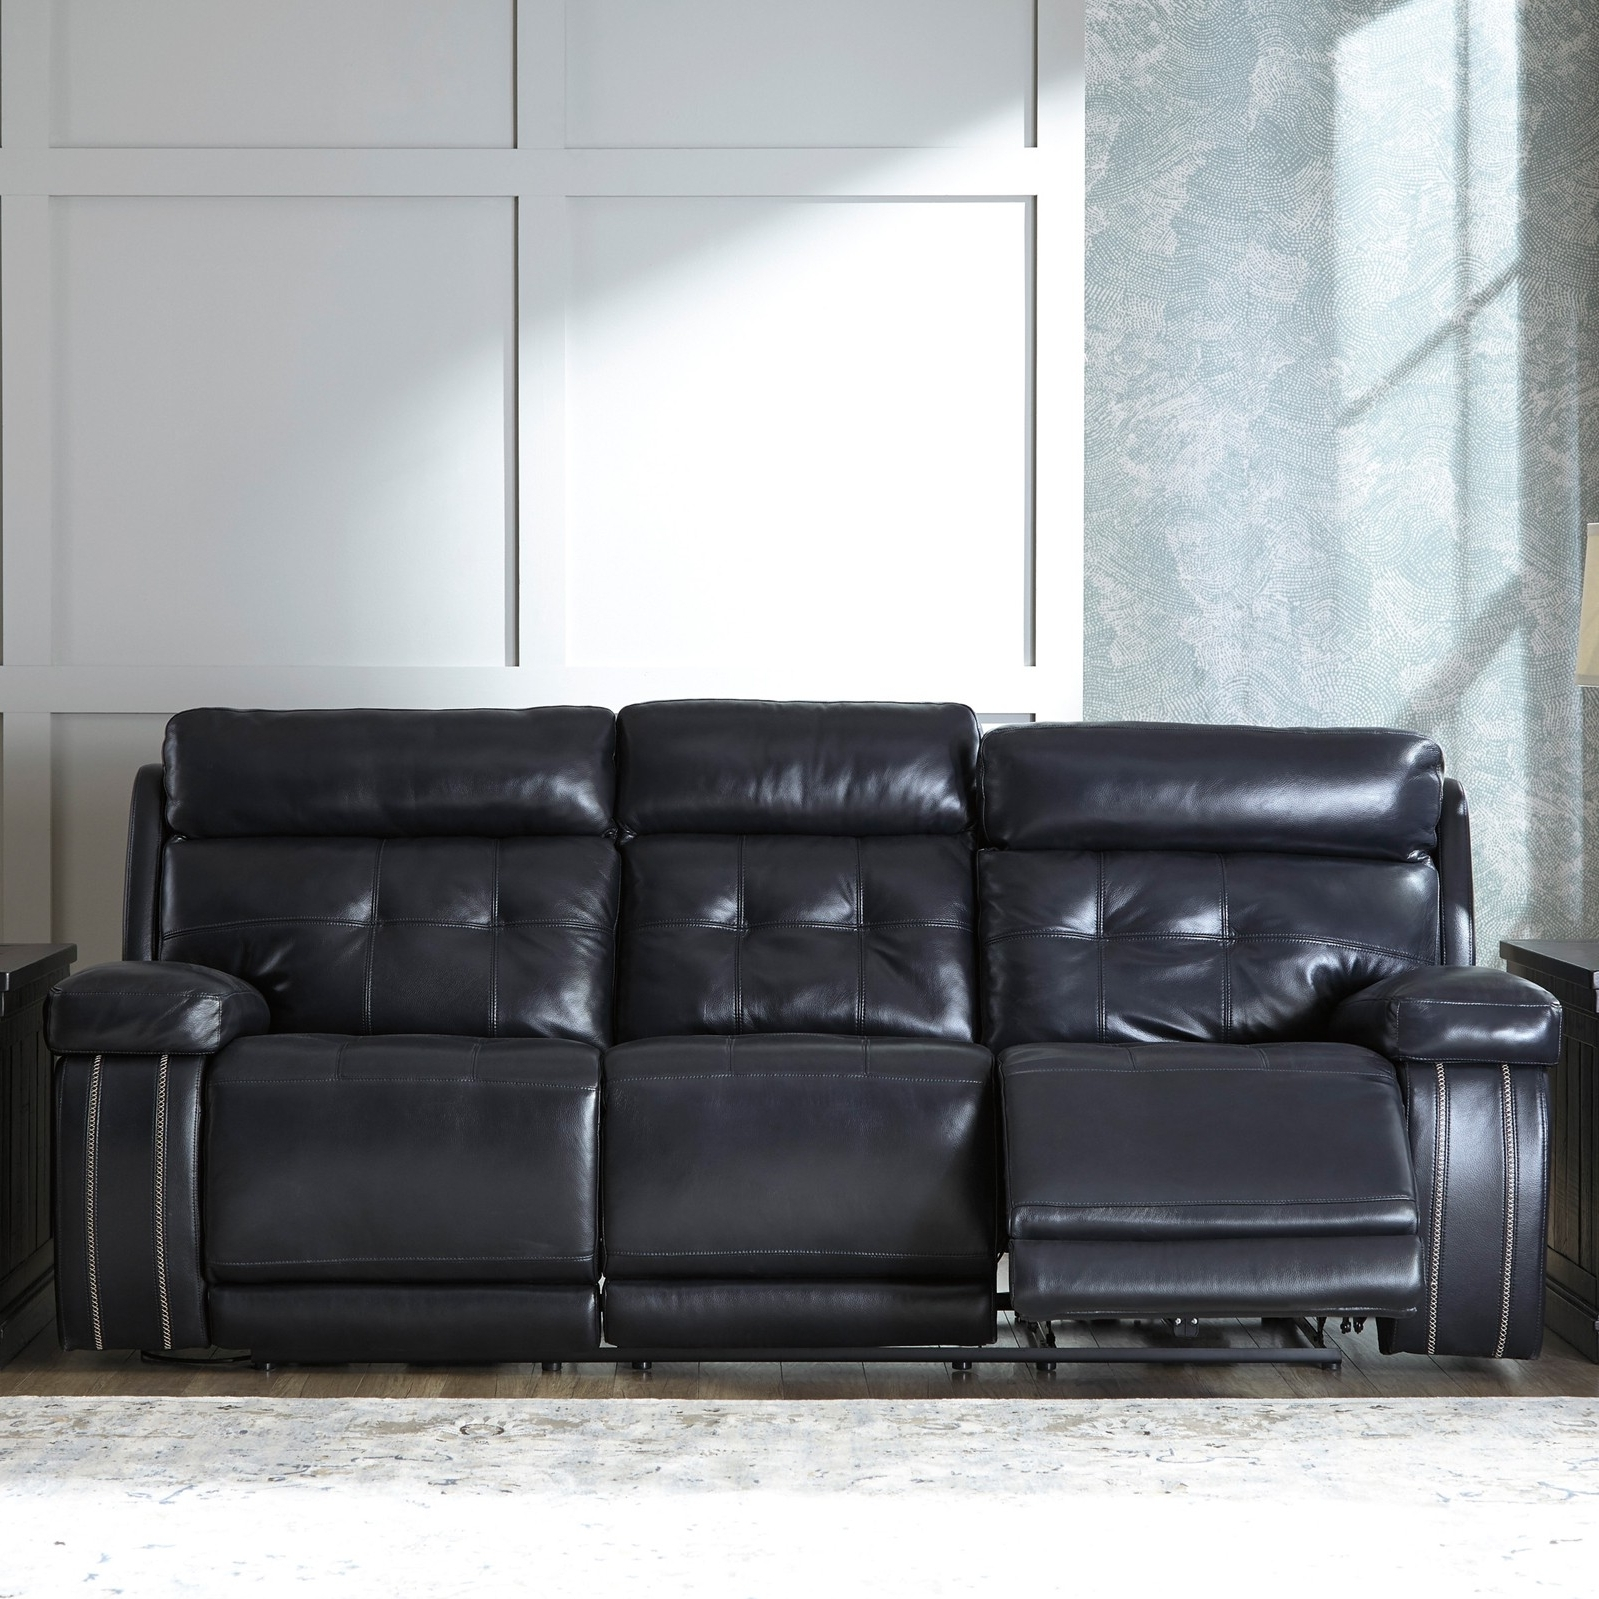 Graford Navy Power Recliner Sofa With Adjustable Headrest For Regarding Most Current Recliner Sofas (Gallery 5 of 17)